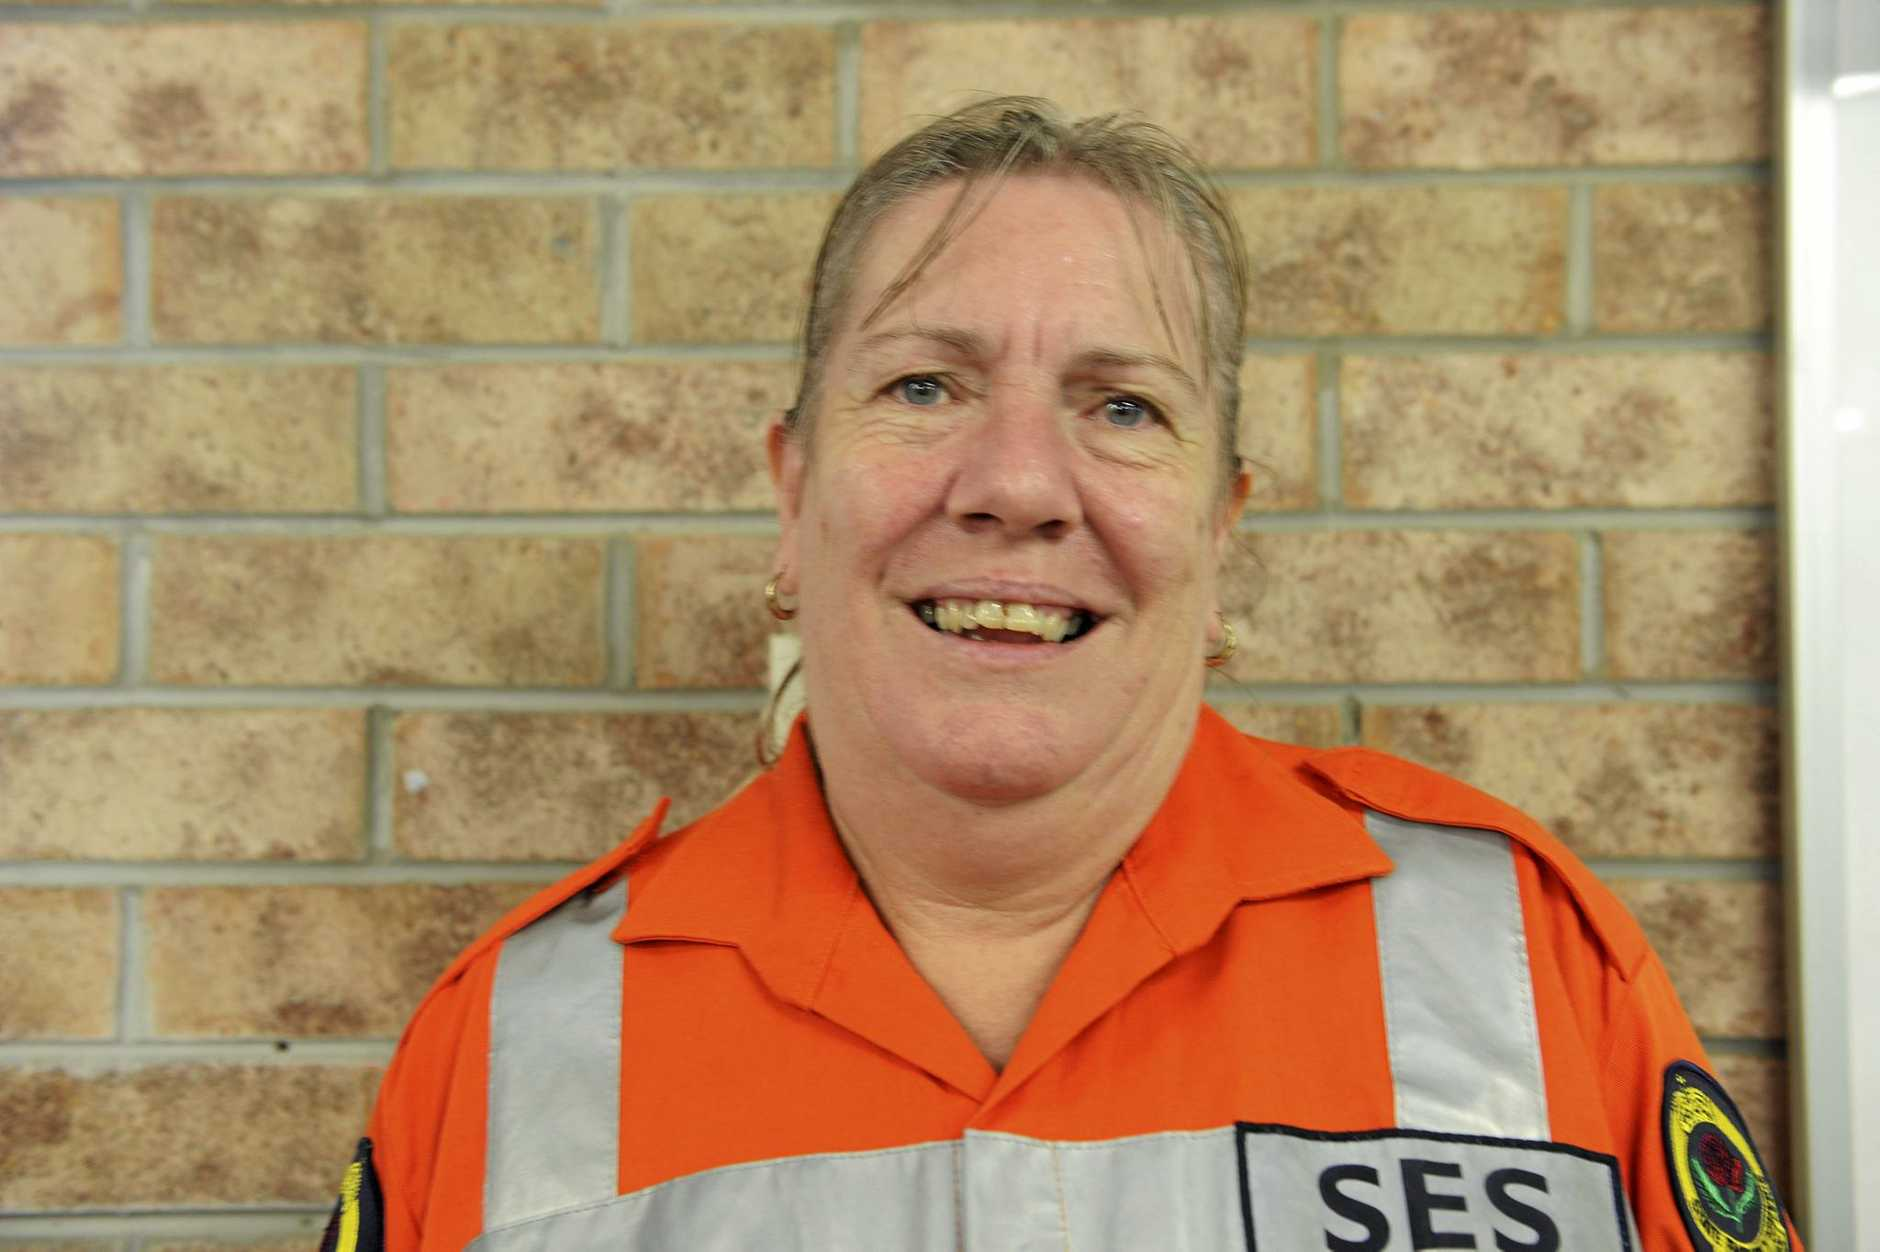 LEANNE COOPER, Yamba: Know your risks, check your neighbours, clean your gutters, drains and yard. Be prepared.